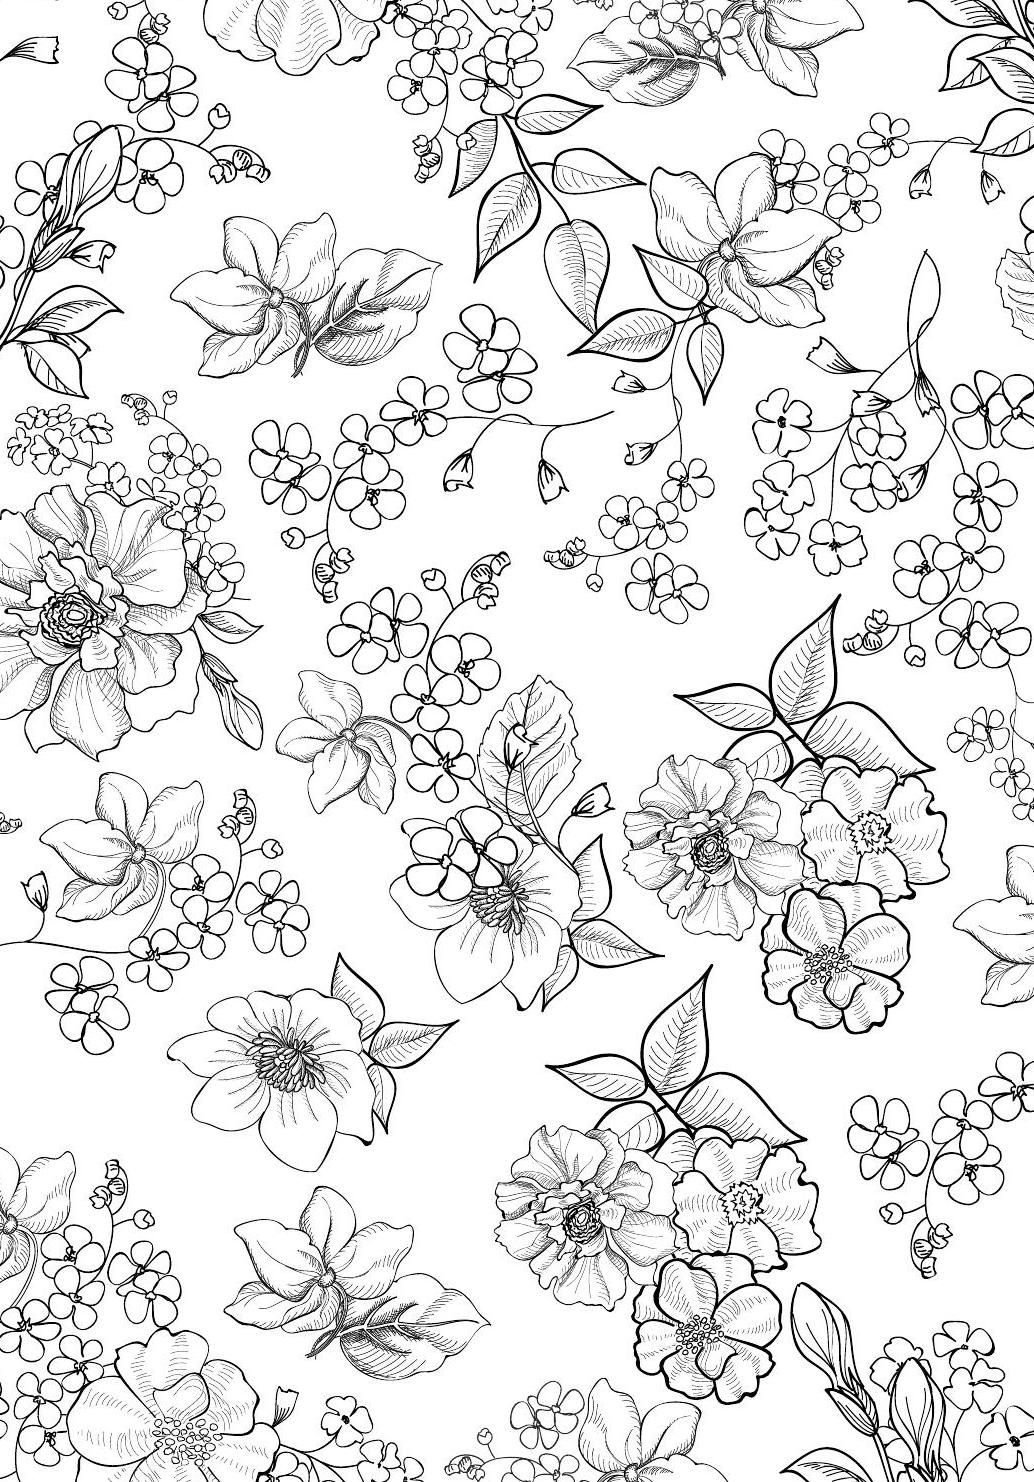 Colour Calm 02 Sampler Clippedonissuu Colorful Art Coloring Book Art Flower Drawing